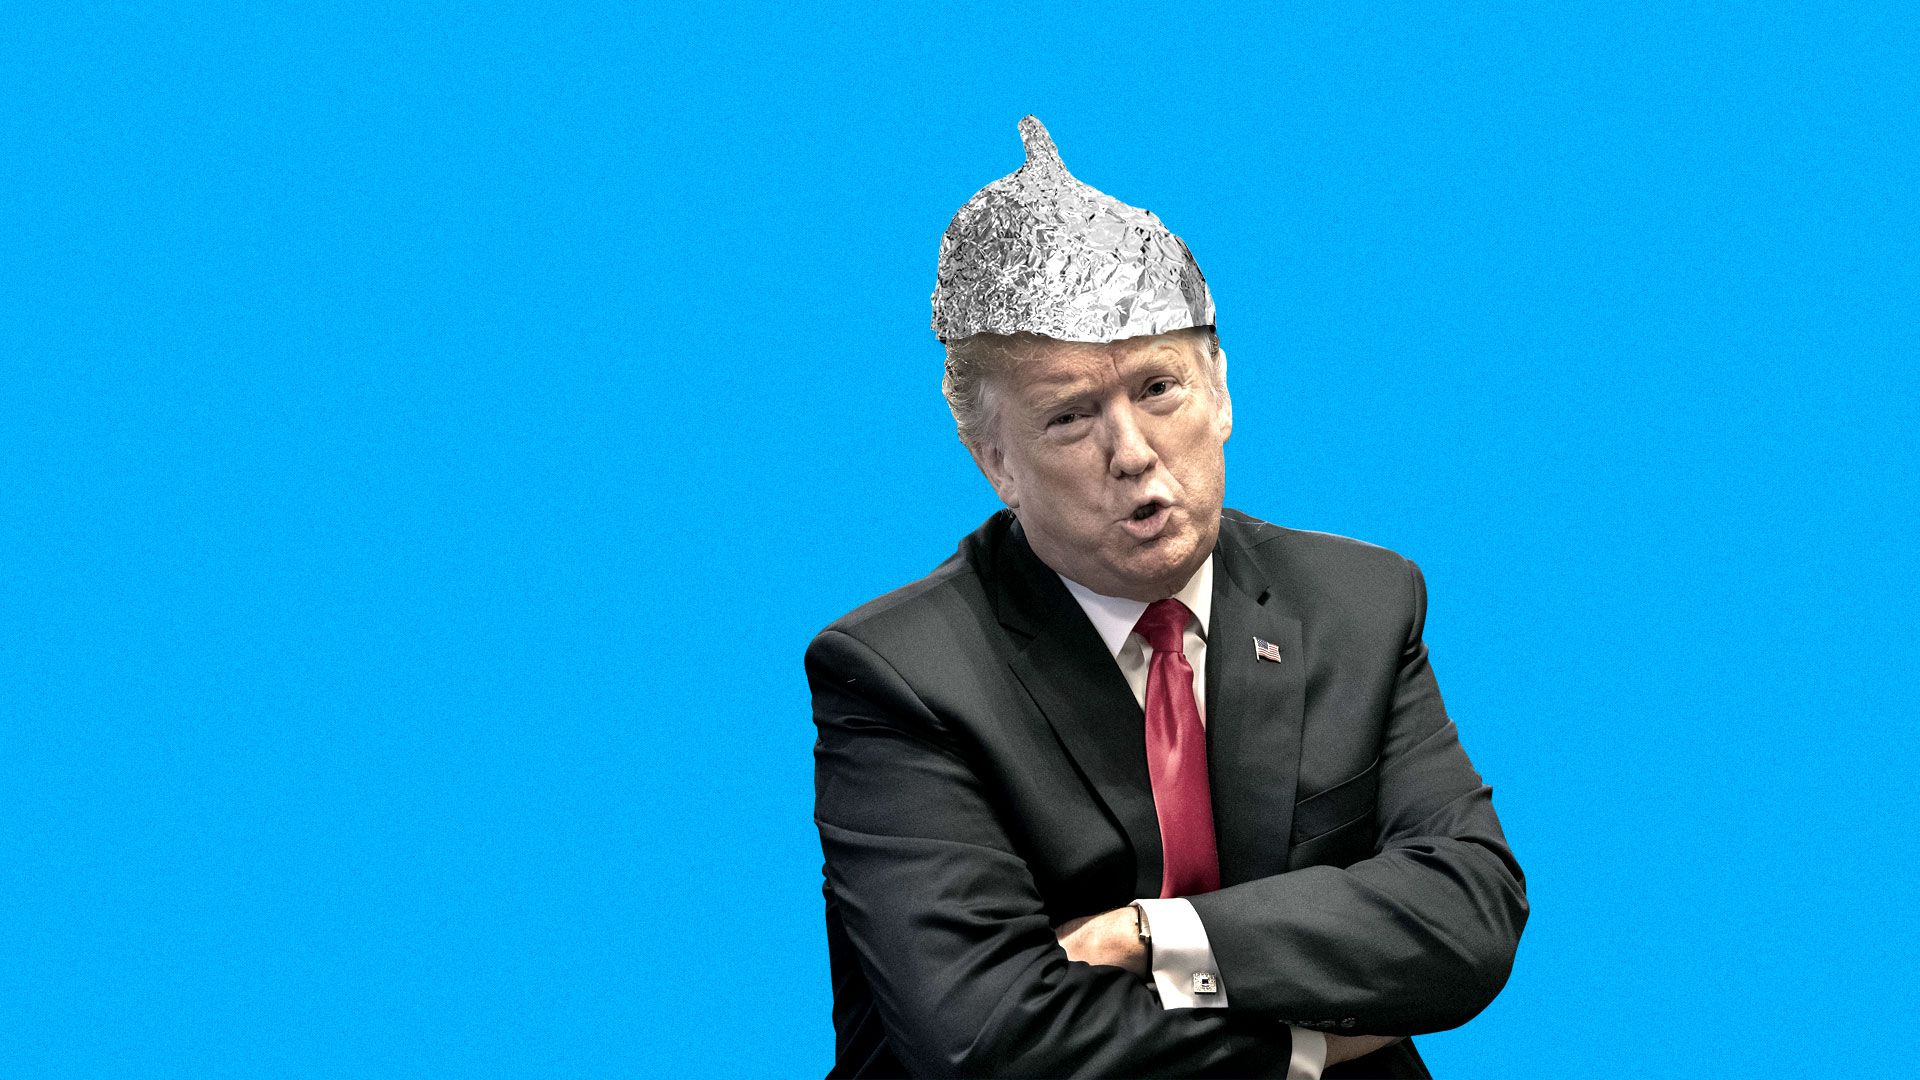 President Trump wearing a tinfoil hat